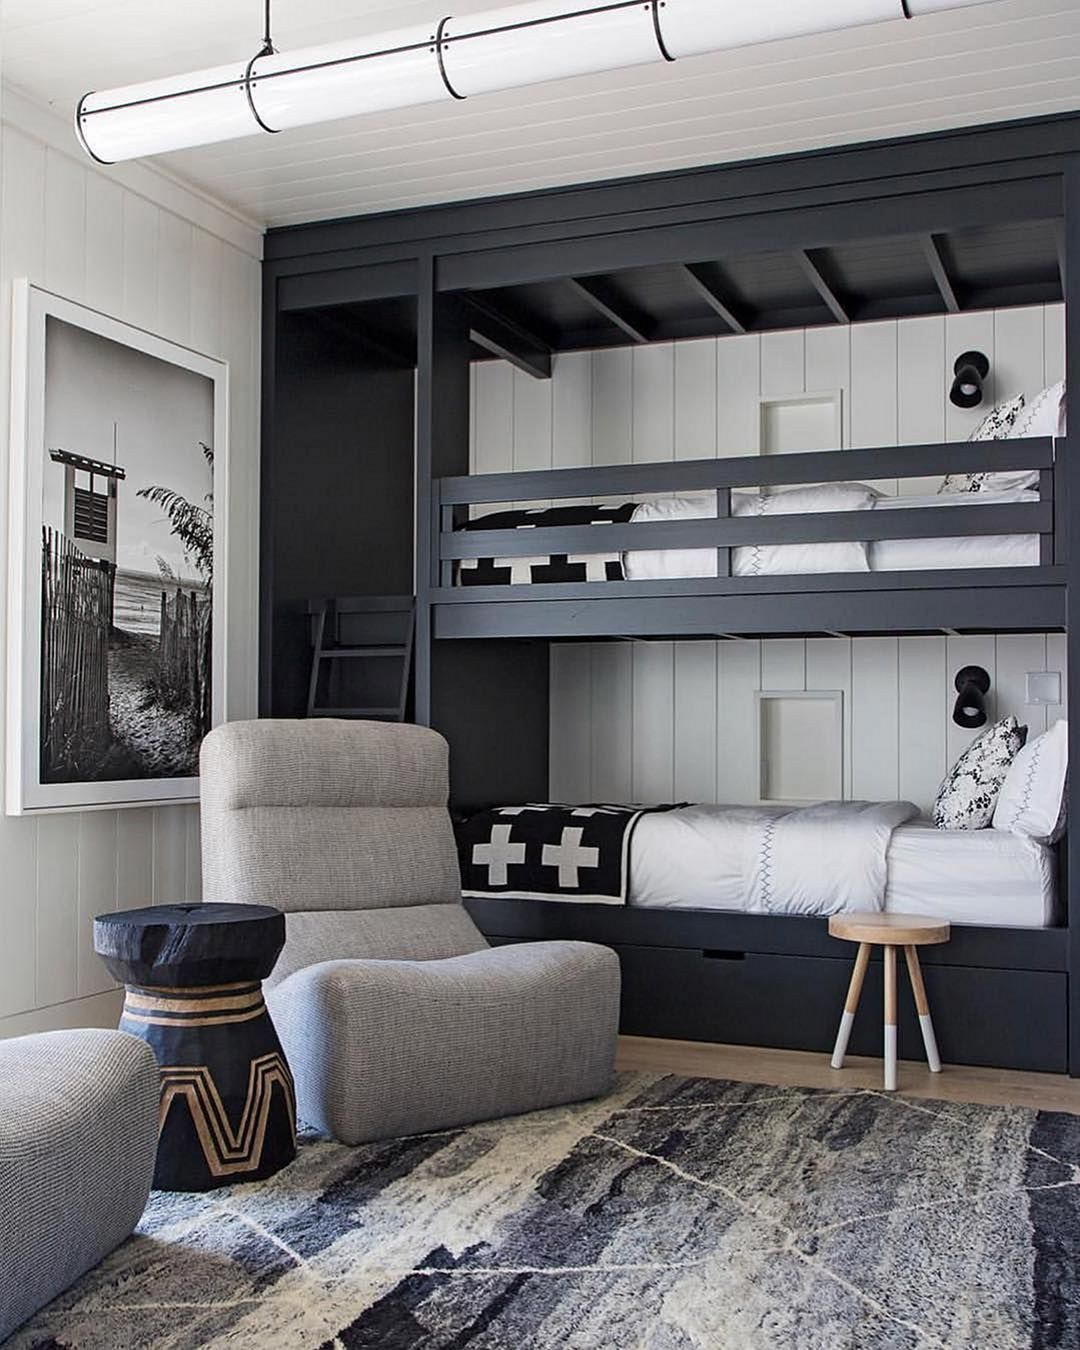 12 Incredible Boy Bedroom Decoration Ideas With Built In Beds Decorits Bunk Beds Built In Bunk Bed Rooms Bunk Bed Designs